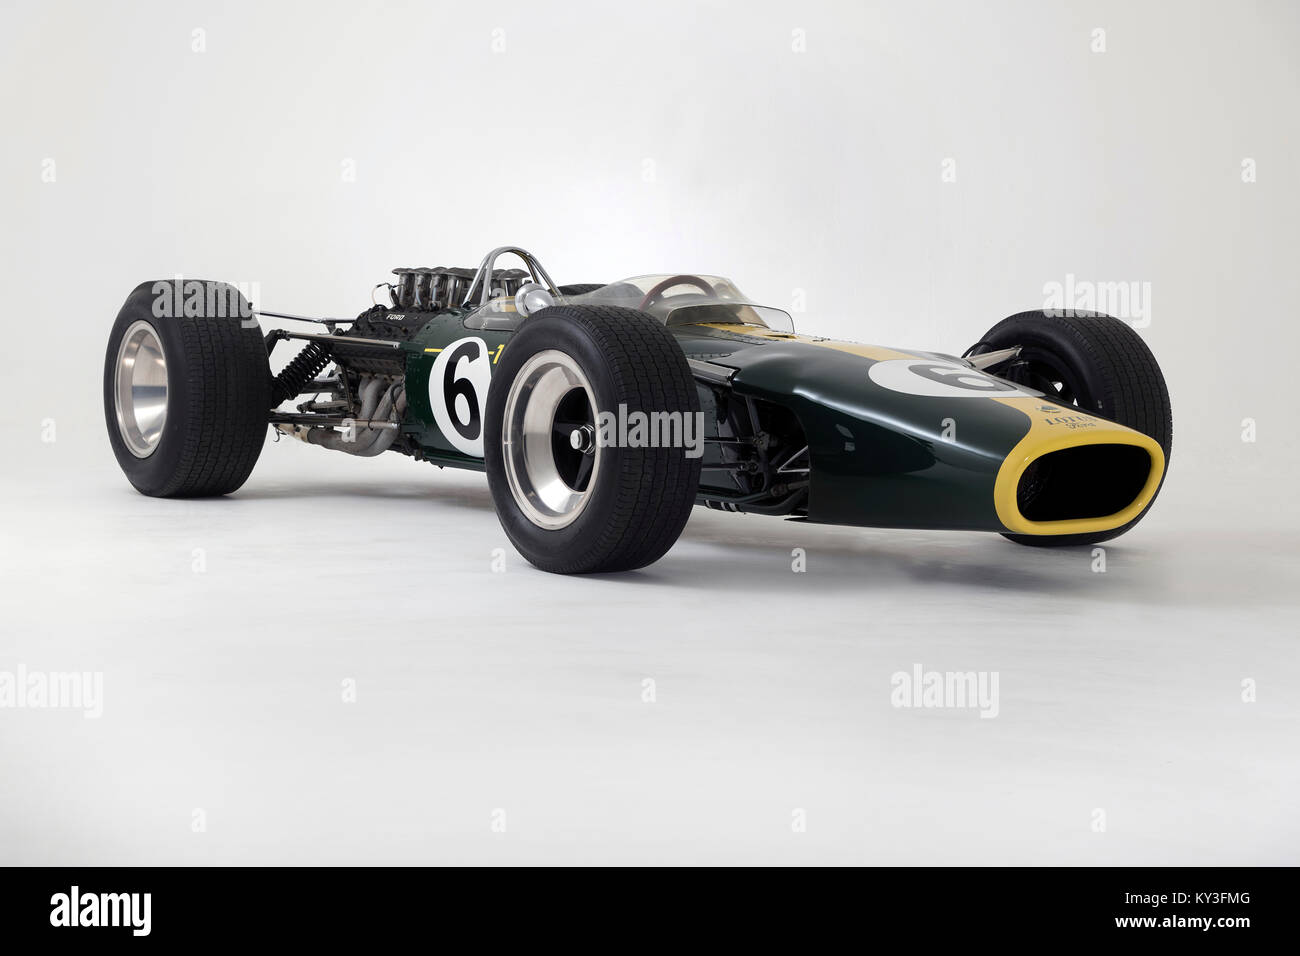 Ford Cosworth Stock Photos & Ford Cosworth Stock Images - Alamy